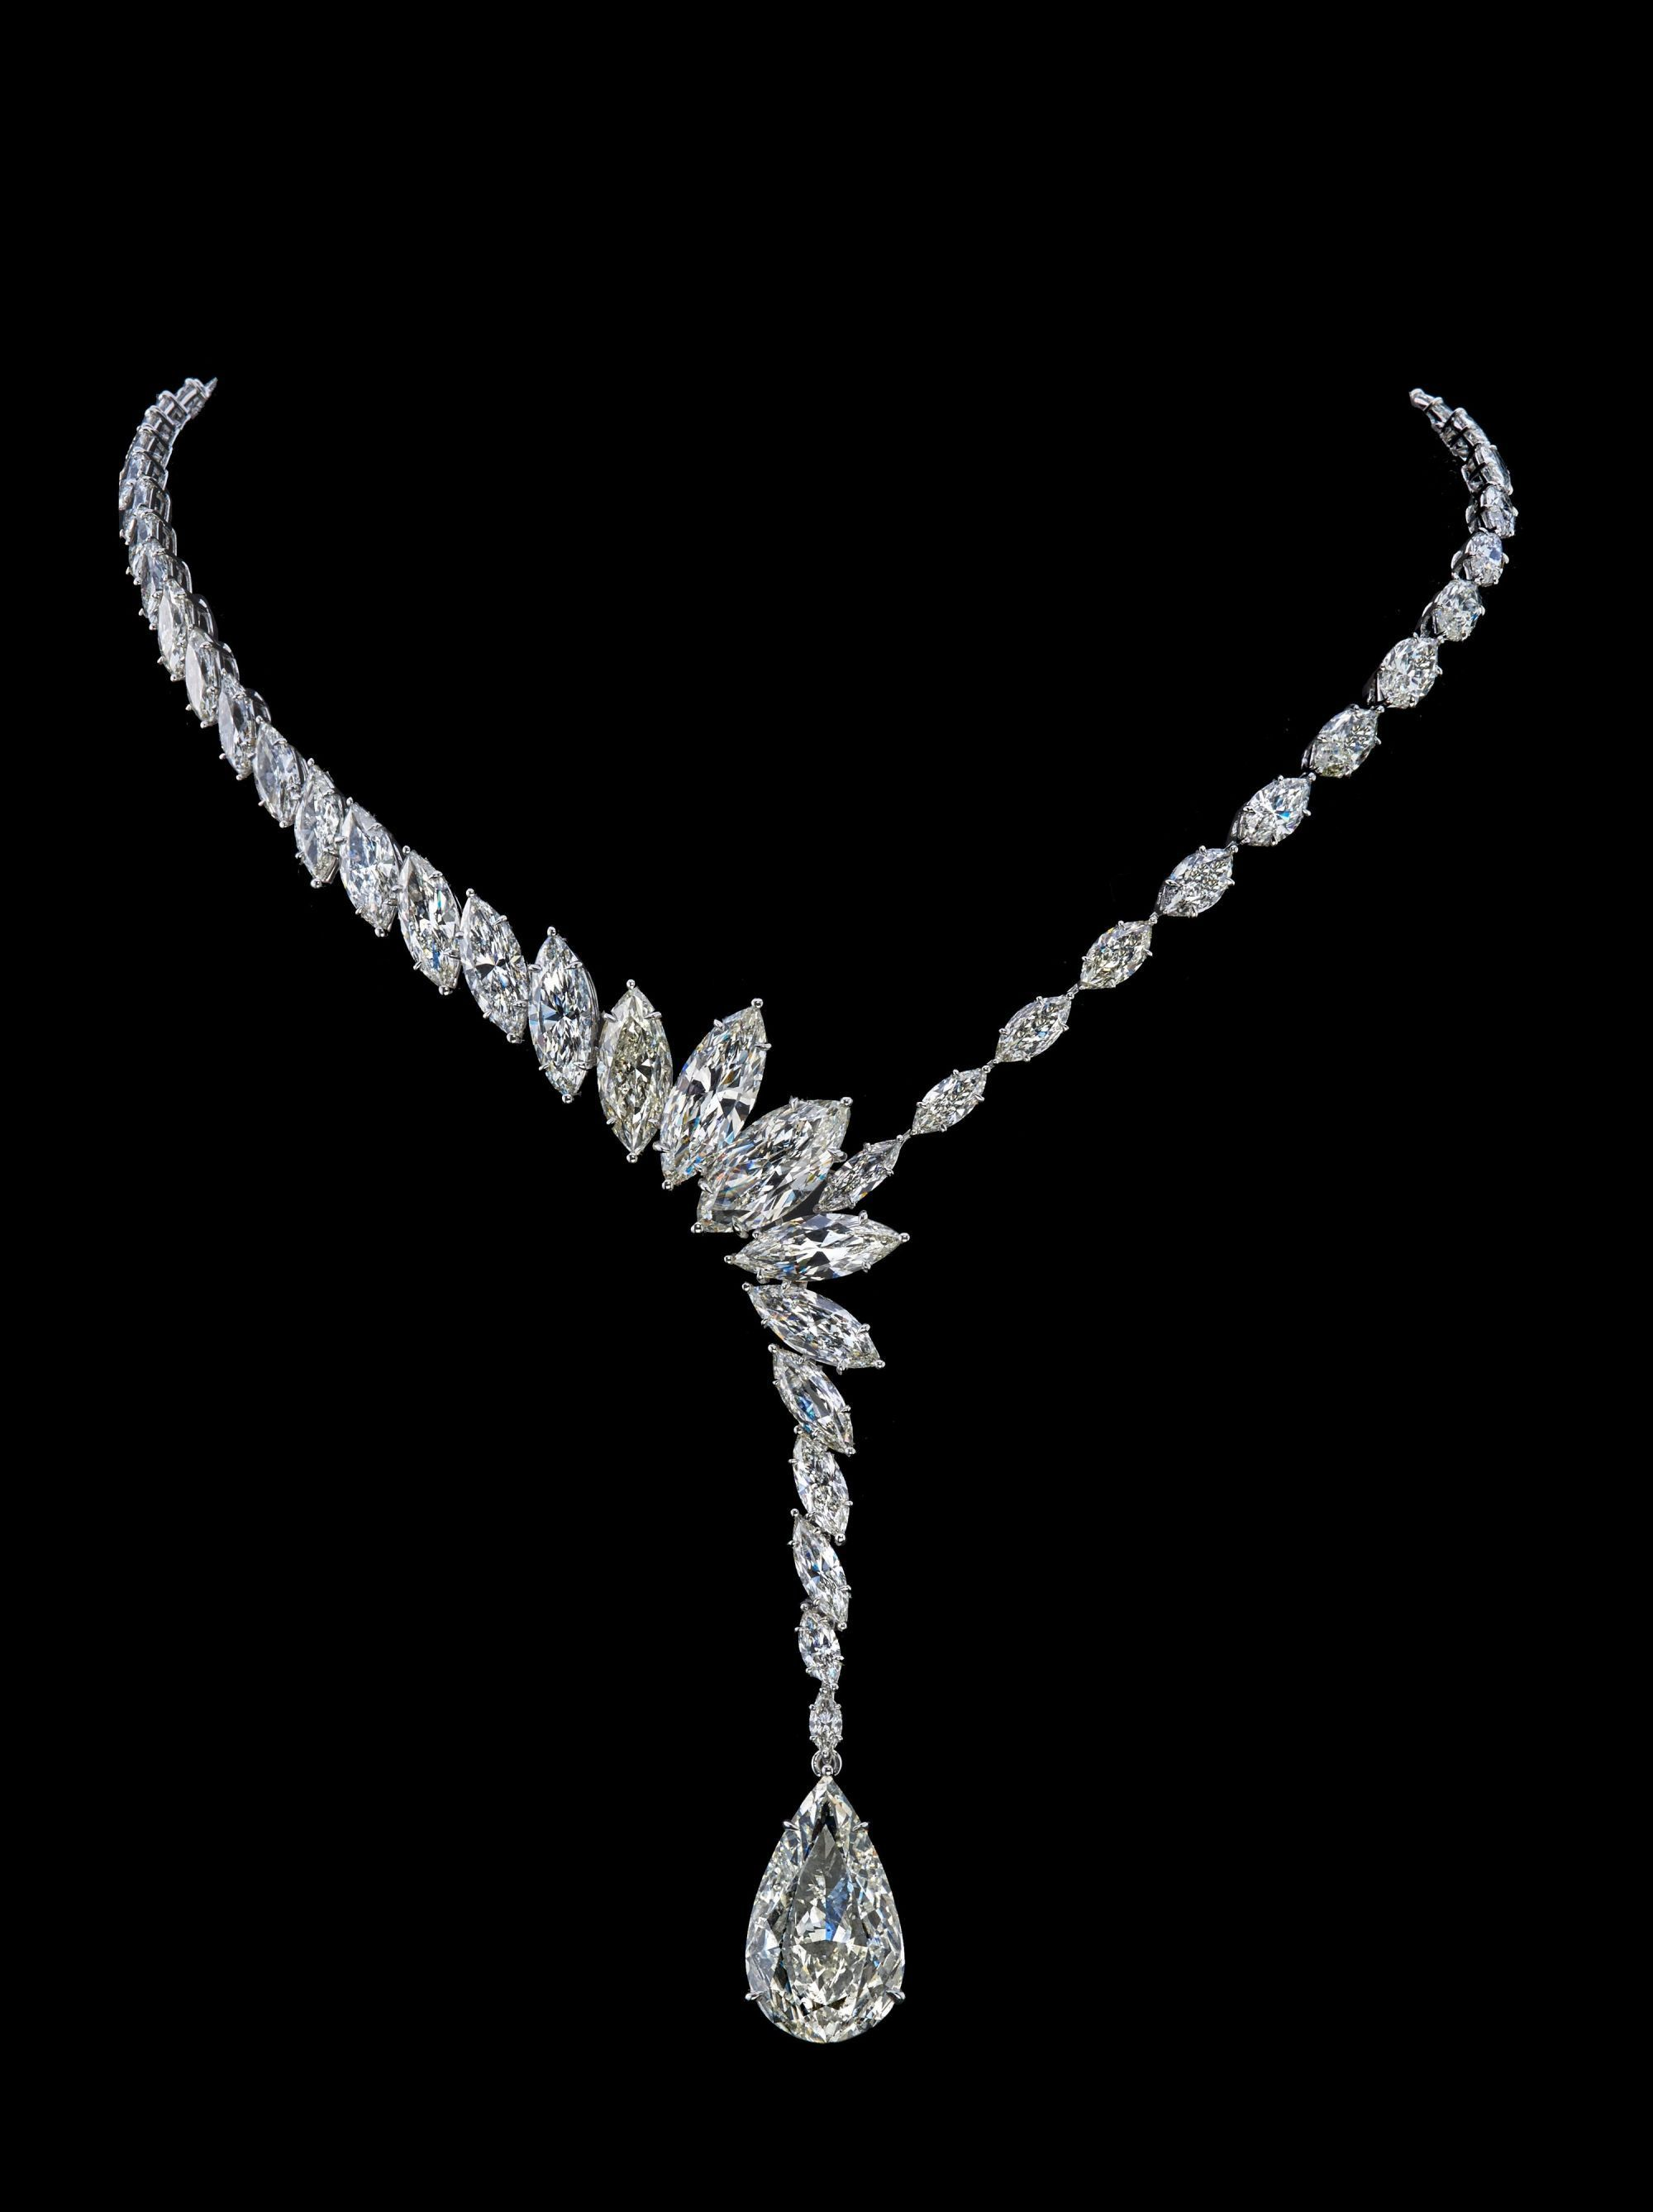 pendent with launch world rhythm diamond pin ny diamonds boutique first superyacht necklace samer to halimeh in color s